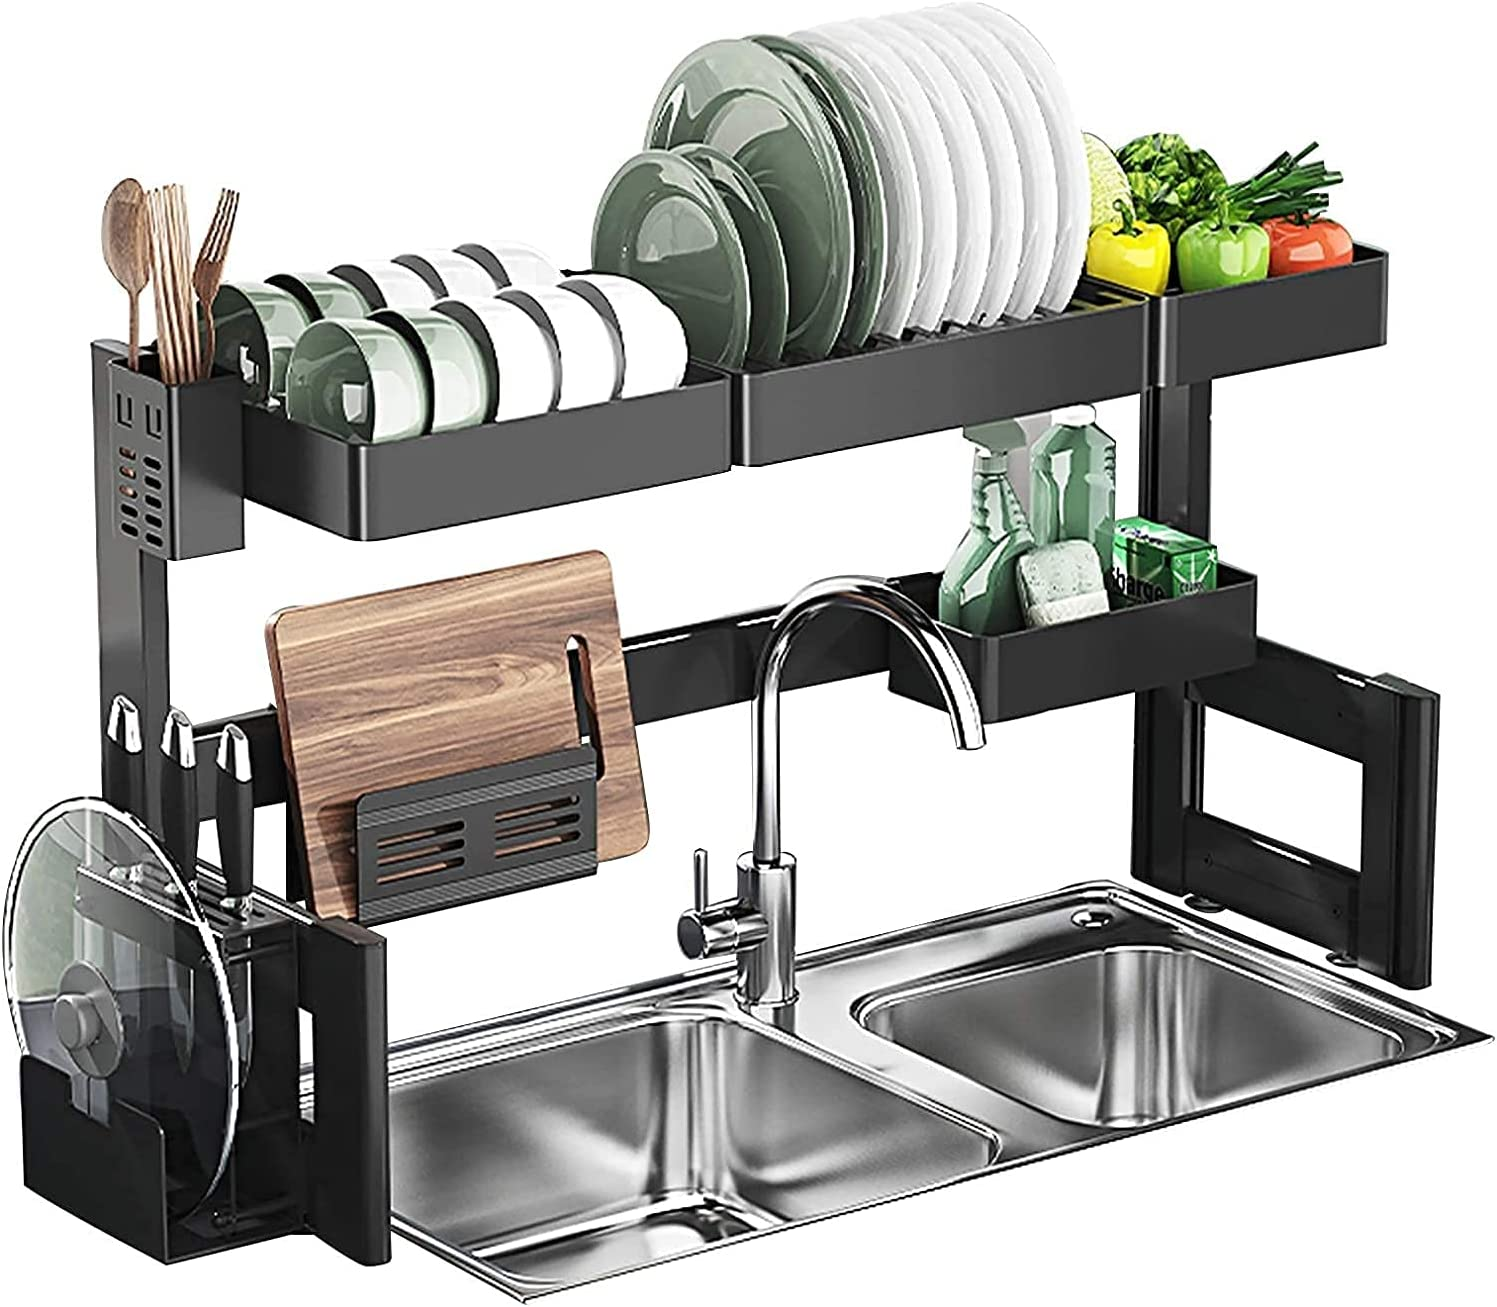 Kitchen Dish Animer and price revision Drying Rack Over 2021new shipping free The Sink 2 Snap-On Design Kit Tier